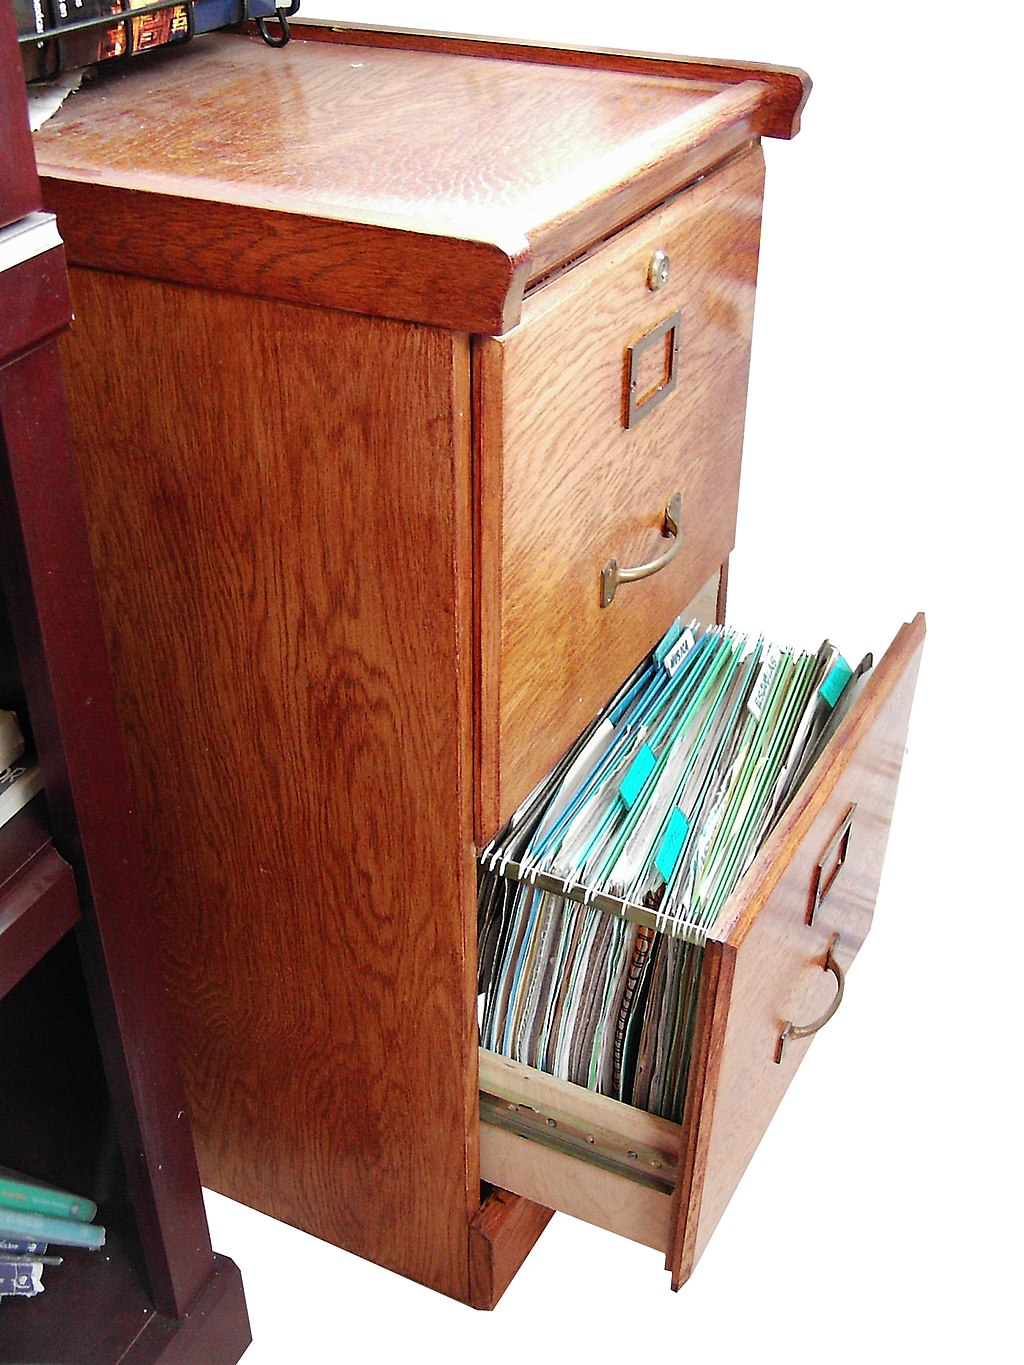 http://upload.wikimedia.org/wikipedia/commons/thumb/a/a1/Wooden_file_cabinet.JPG/1024px-Wooden_file_cabinet.JPG